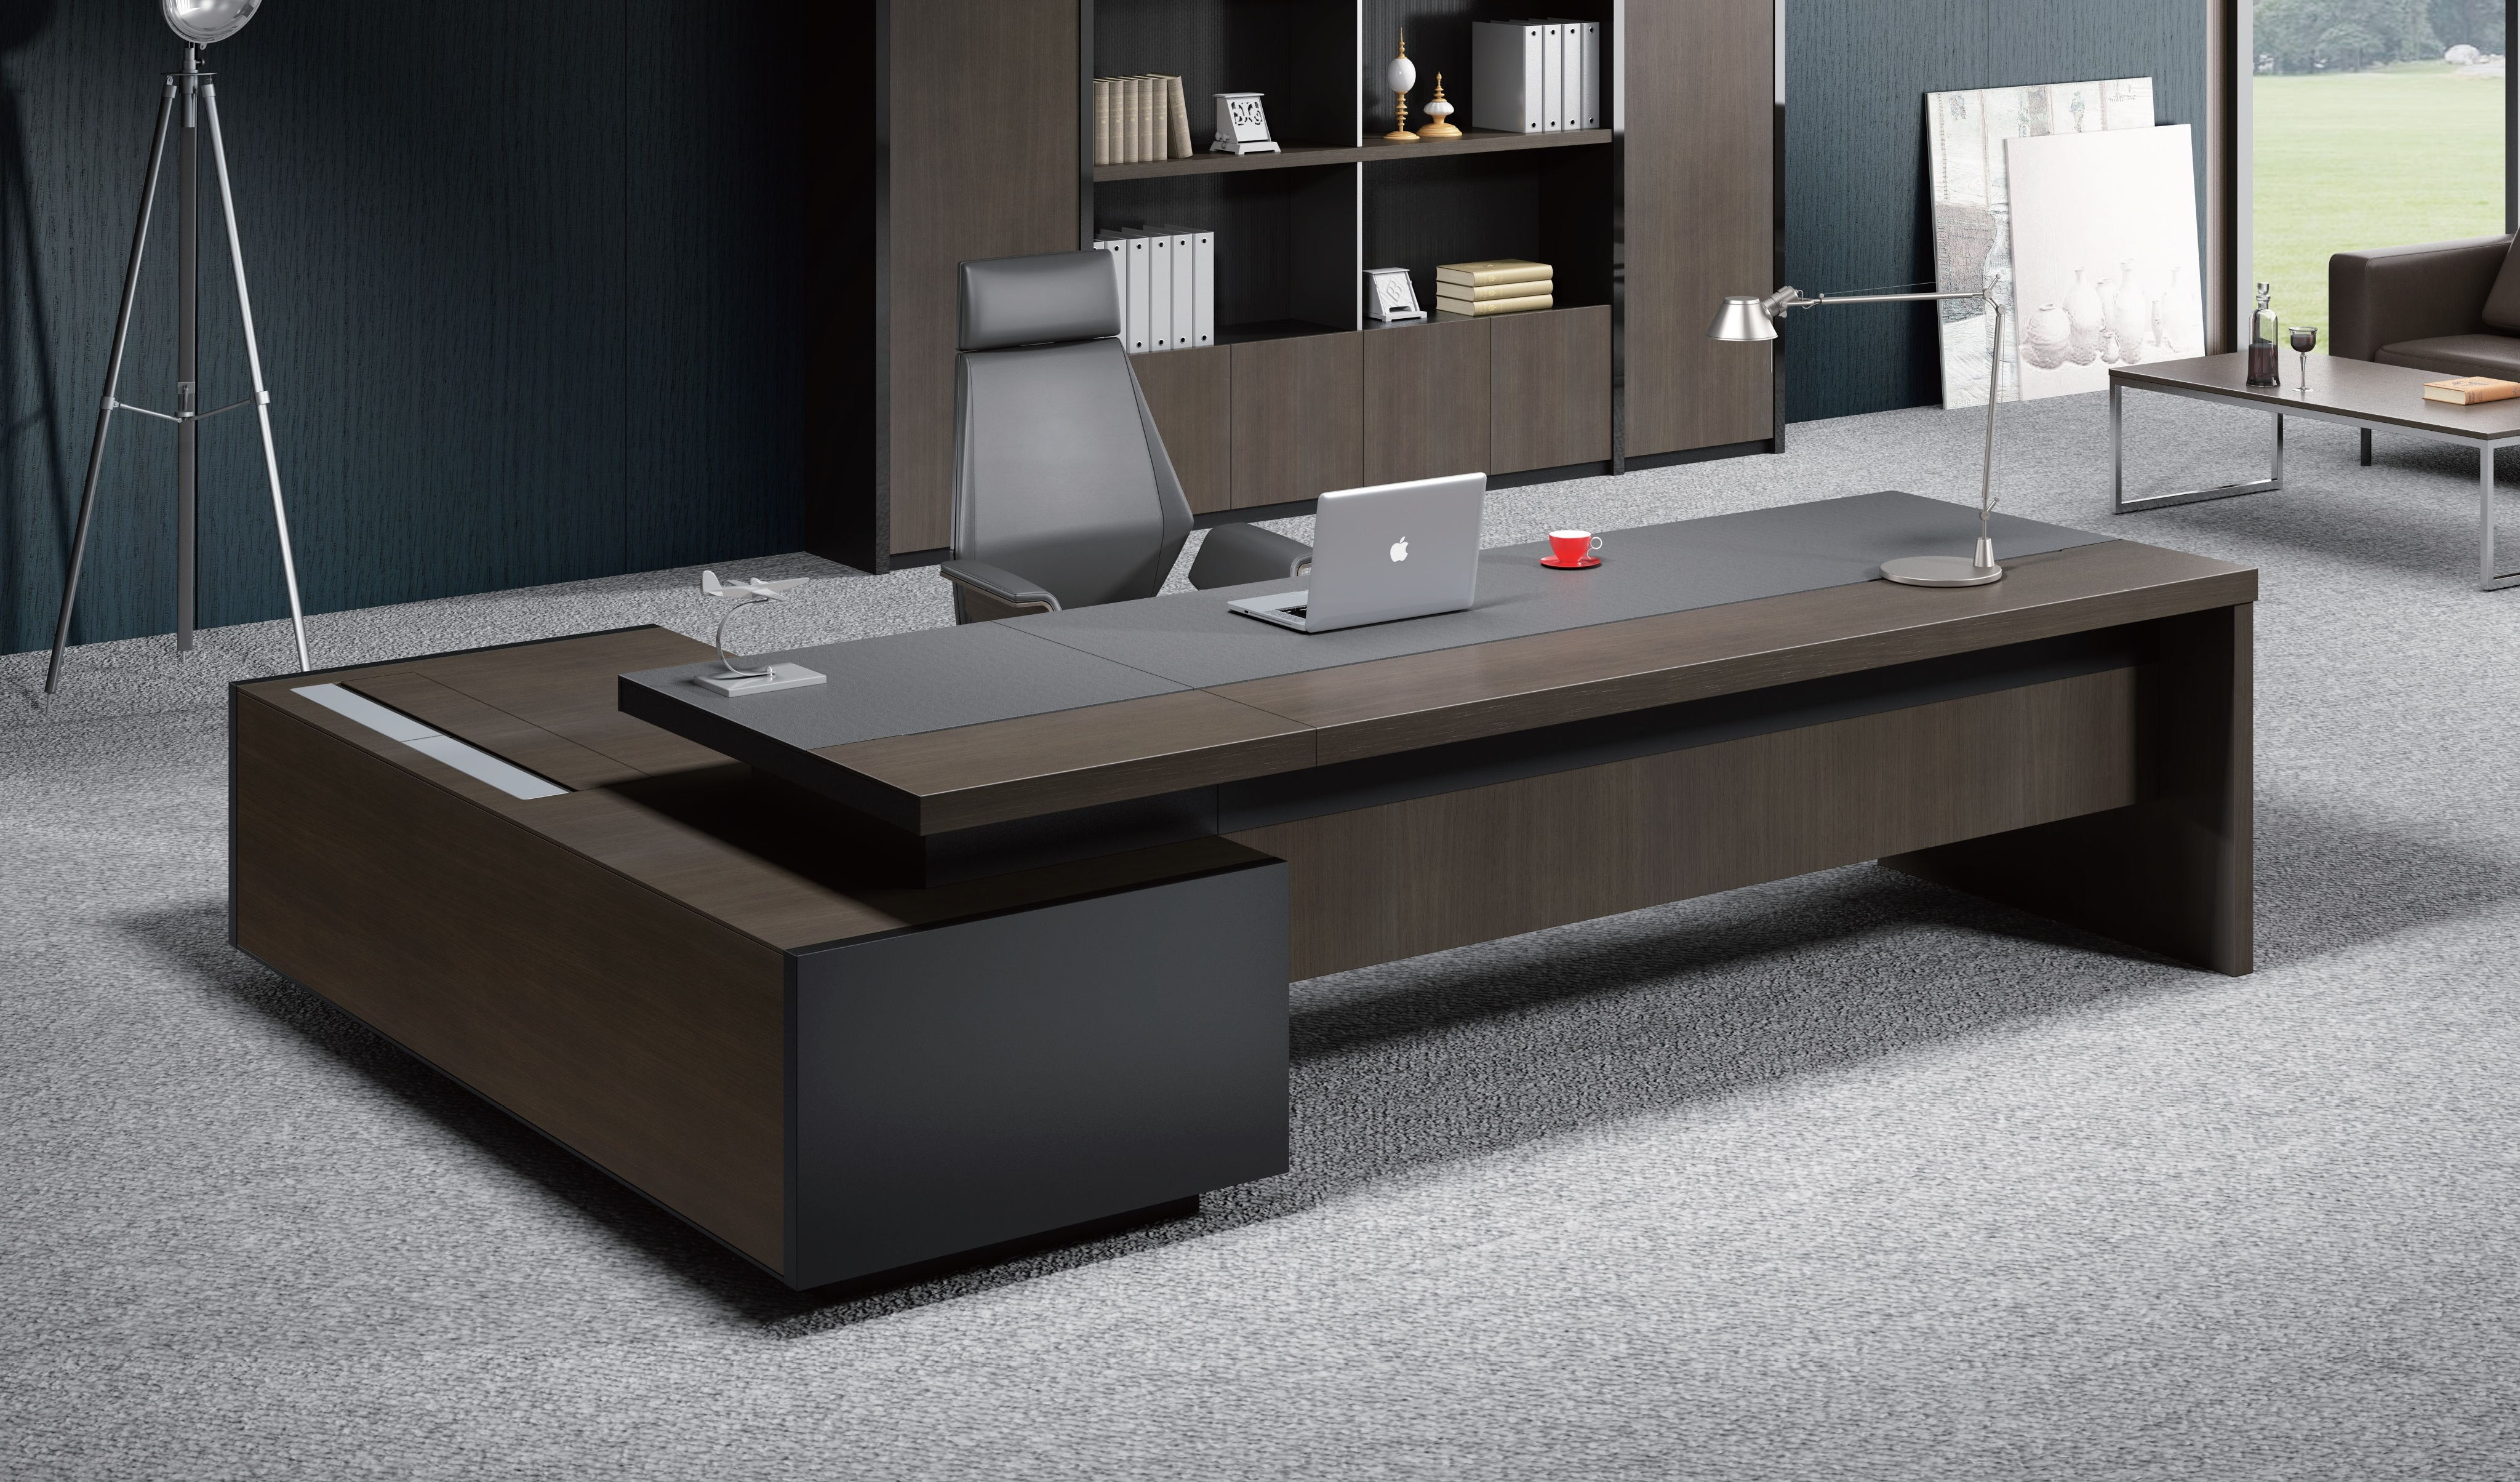 Table Desig 20 Modern And Stylish Office Table Designs With Photos